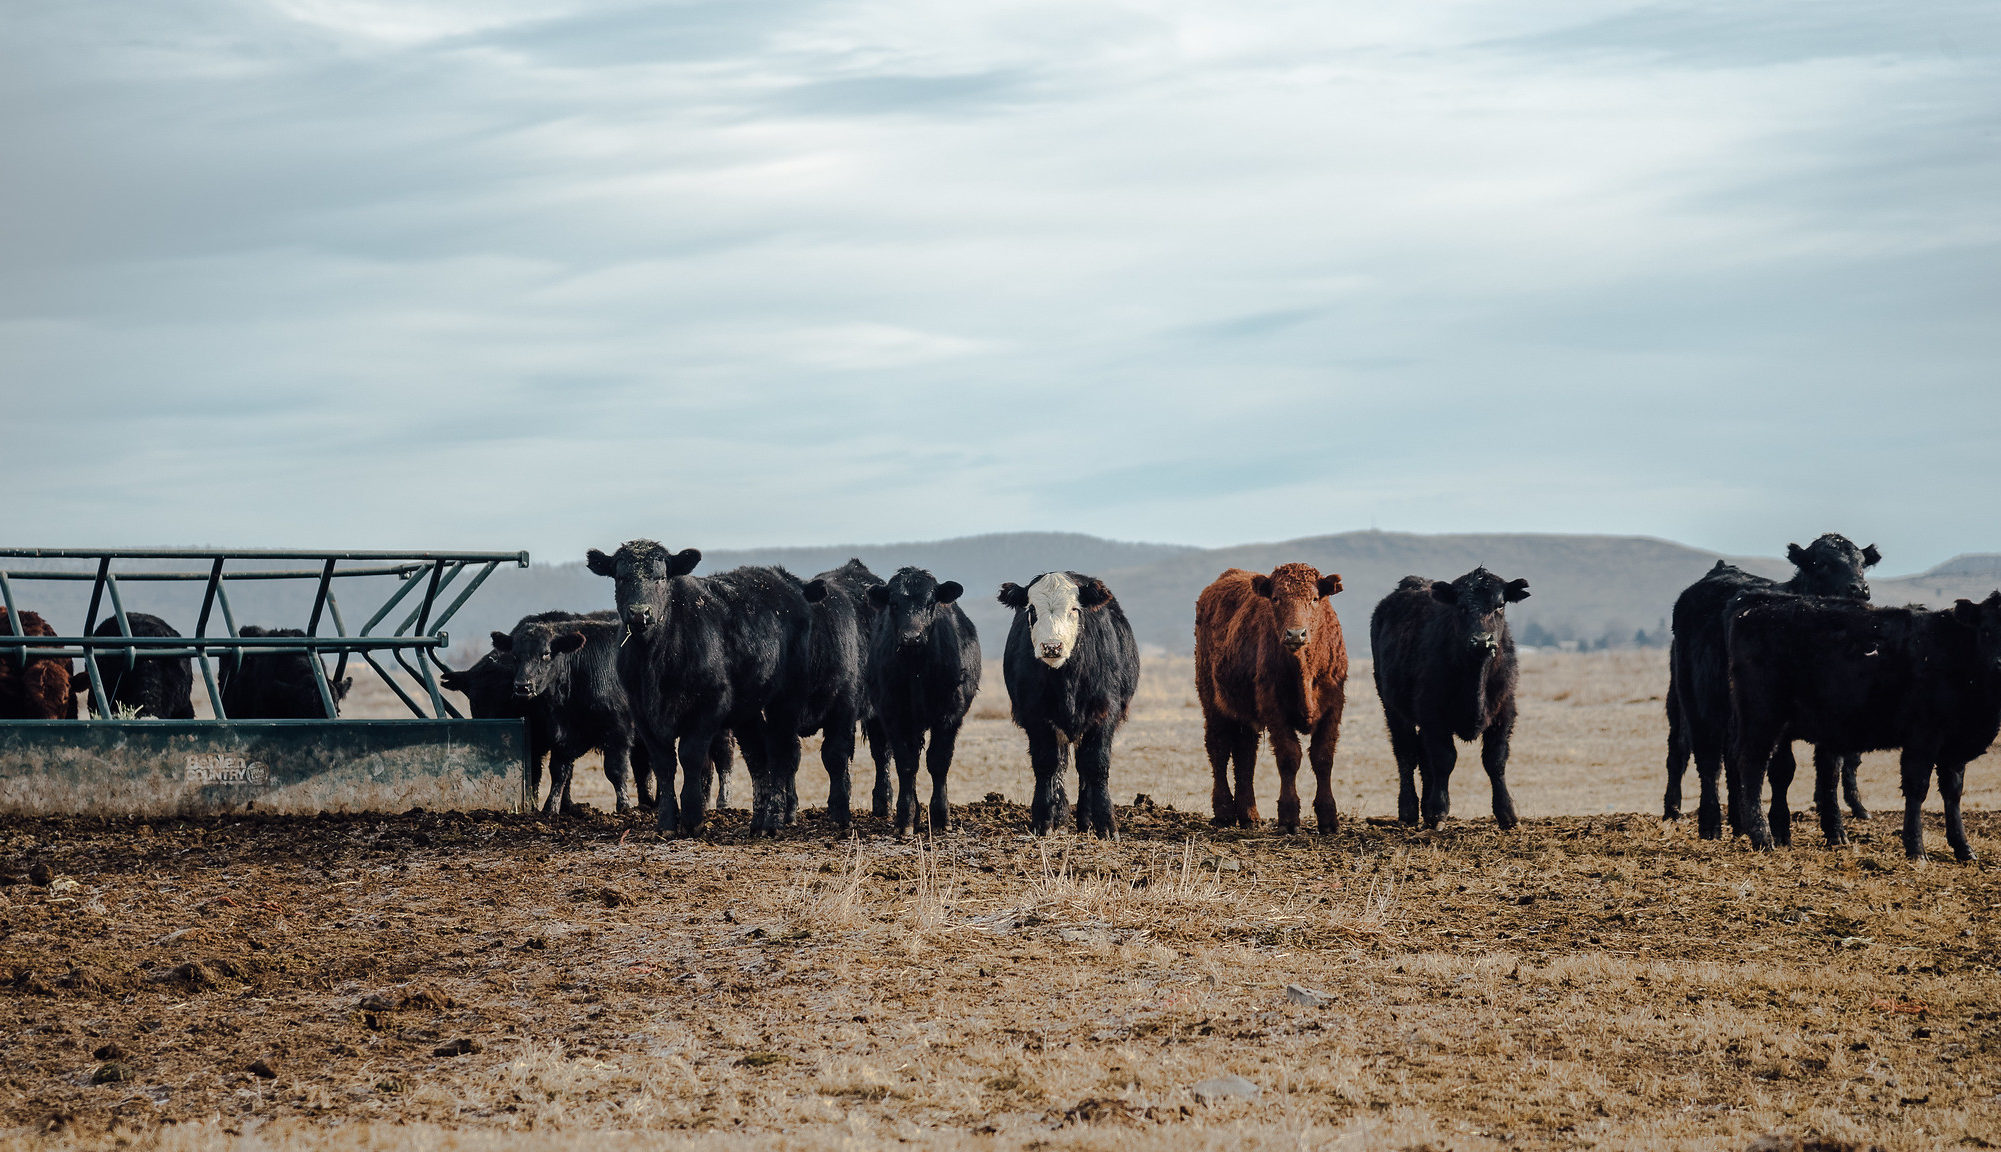 Cattle. Photo by Loren Kerns/Flickr.